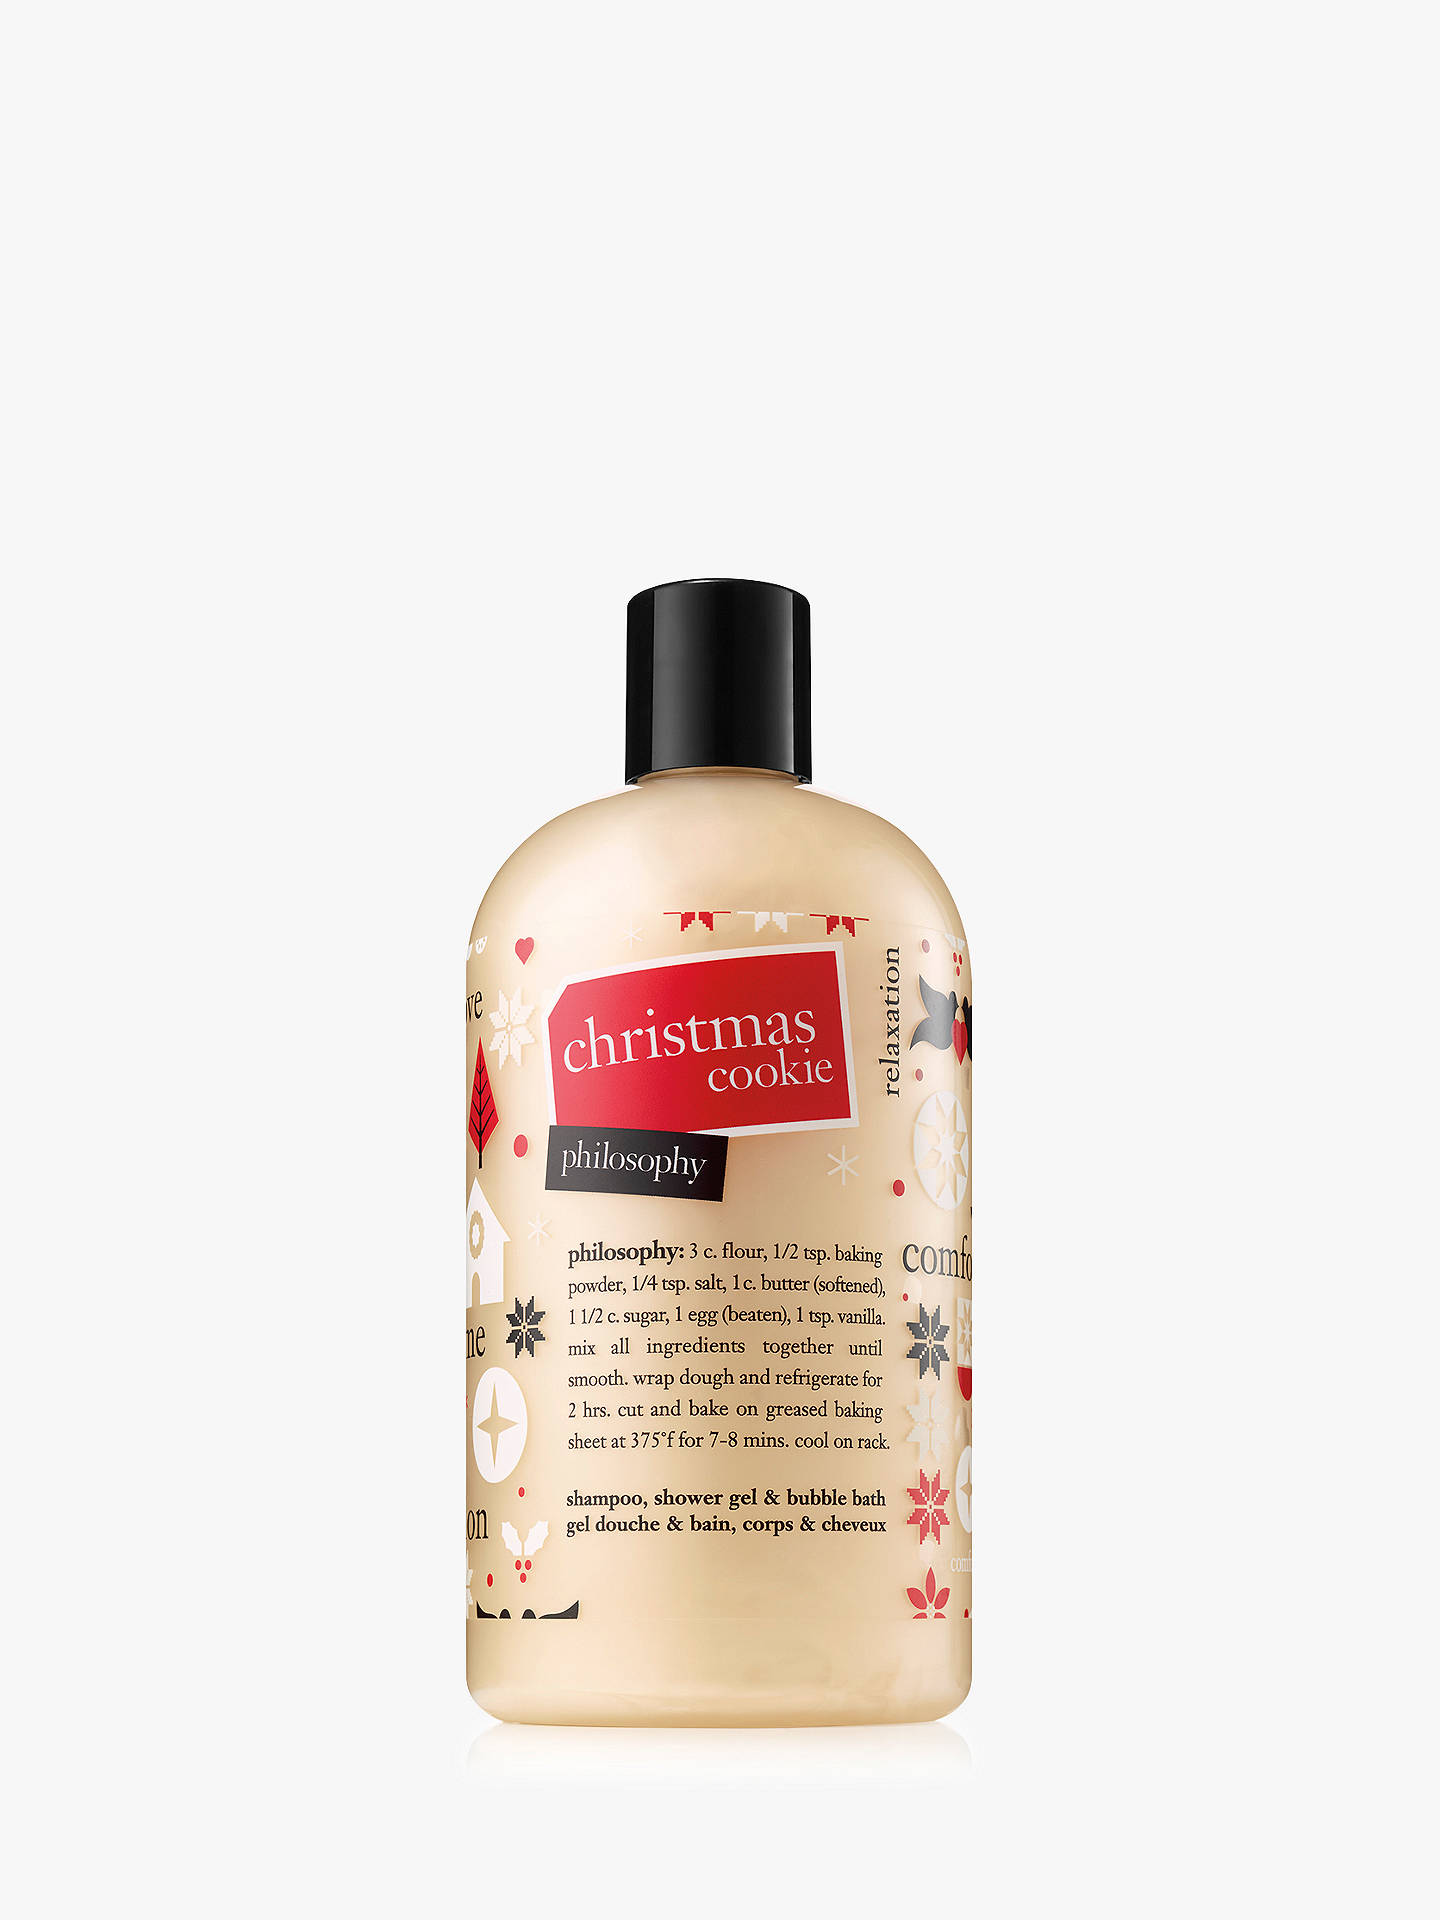 BuyPhilosophy Christmas Cookie Shampoo, Shower Gel & Bubble Bath, 480ml Online at johnlewis.com